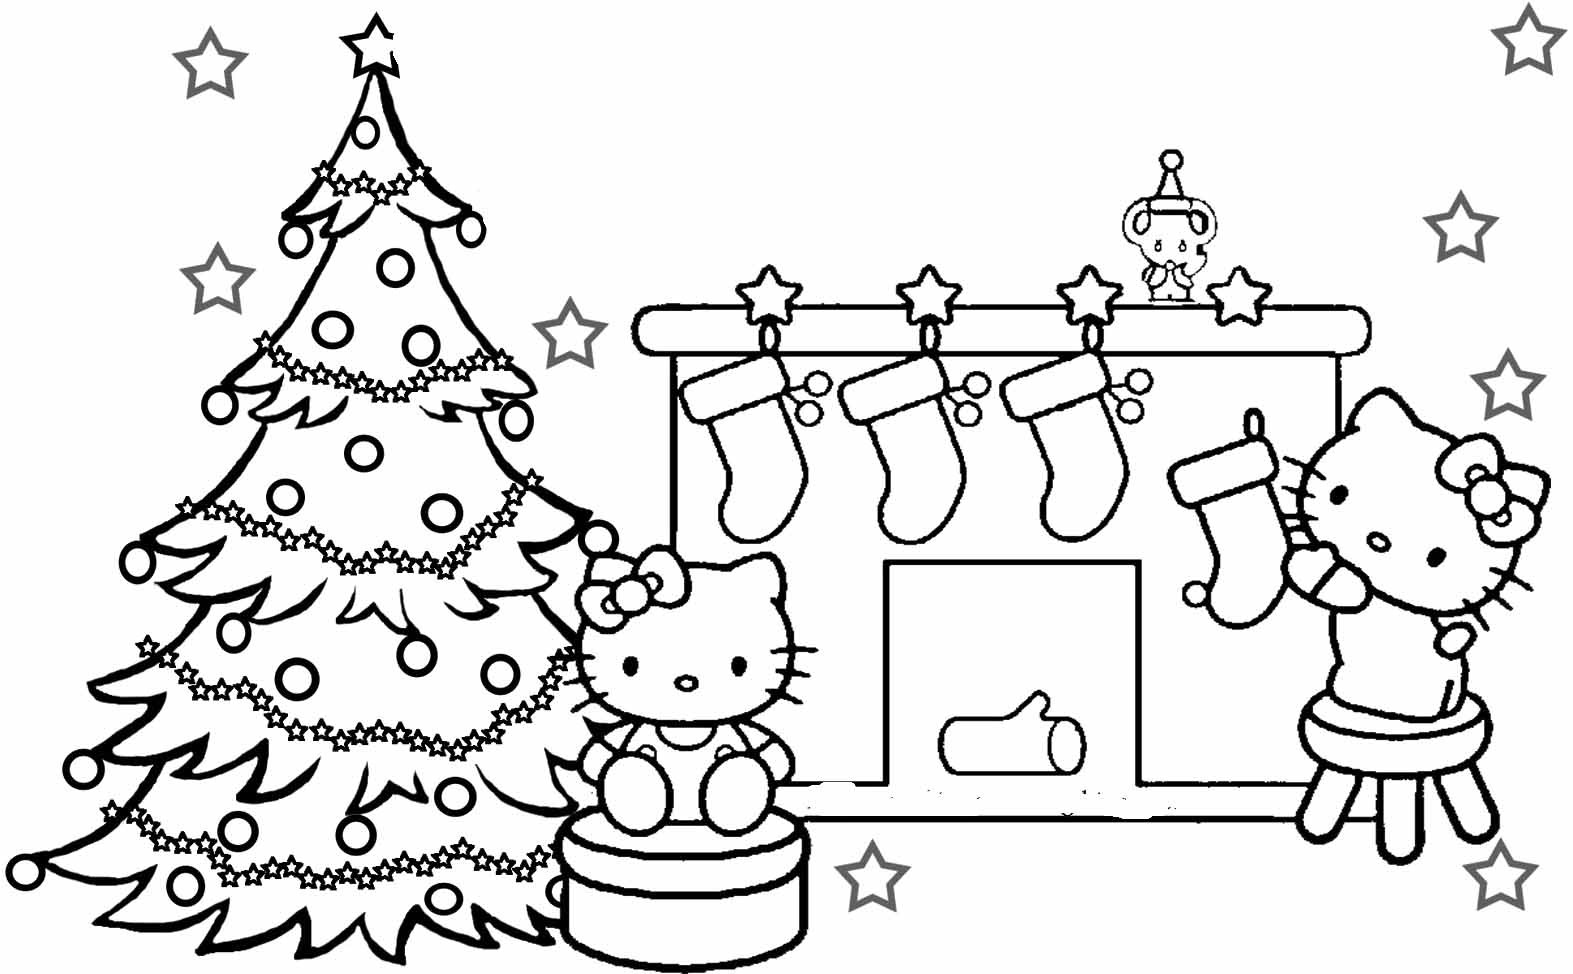 Christmas Coloring Sheets For Toddlers With Fun Halloween